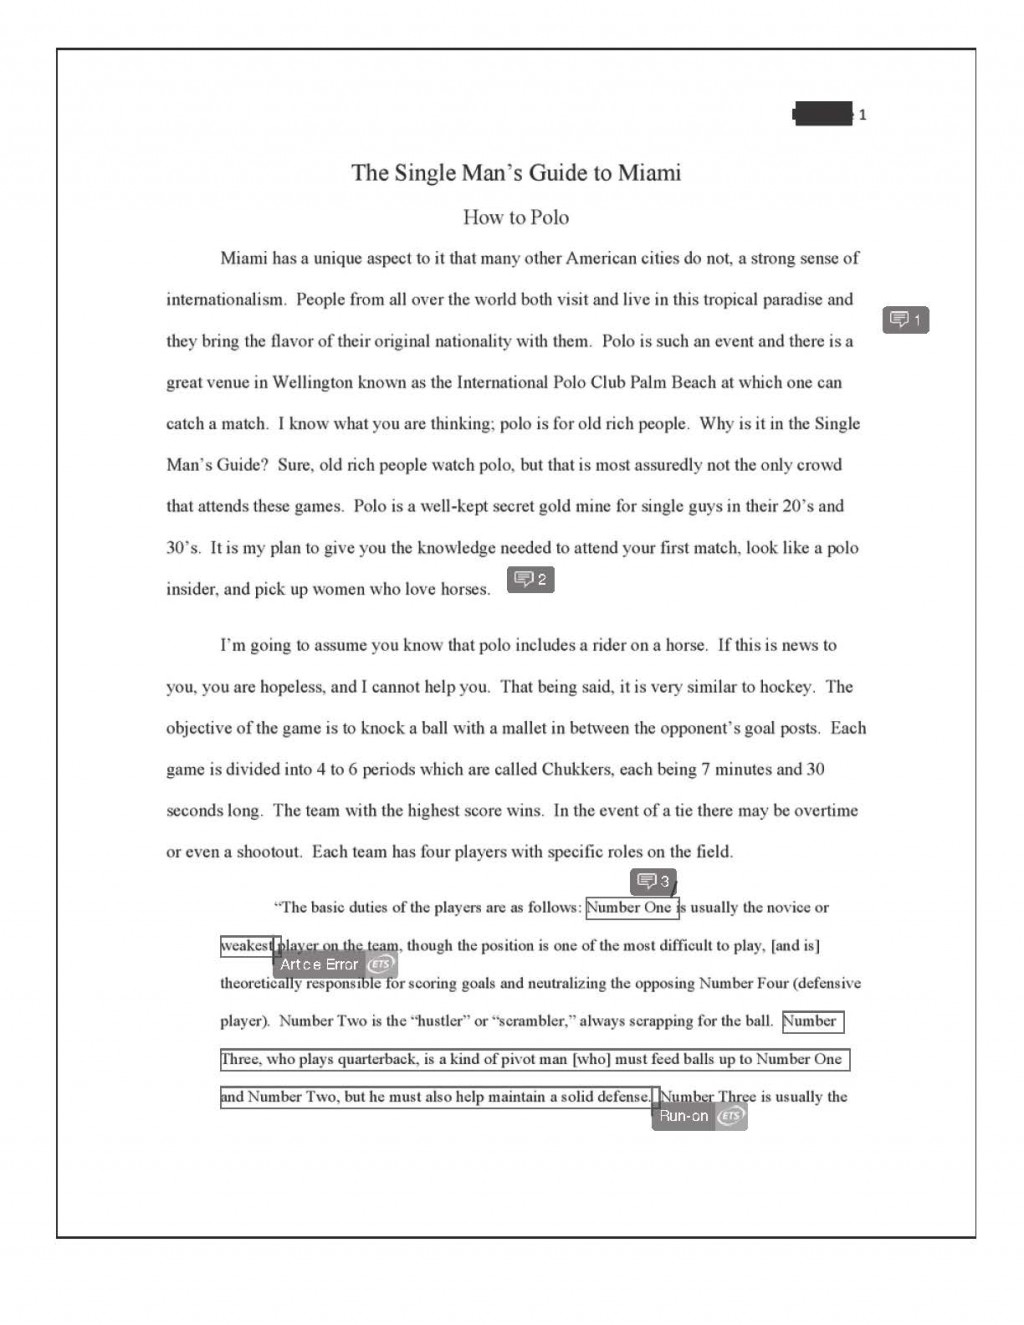 005 Informative Essay Topics Essays Sample Funny Argumentative For Middle School Final How To Polo Redacted P College Students Hilarious Good Remarkable Expository Secondary 4th Grade 5th Large